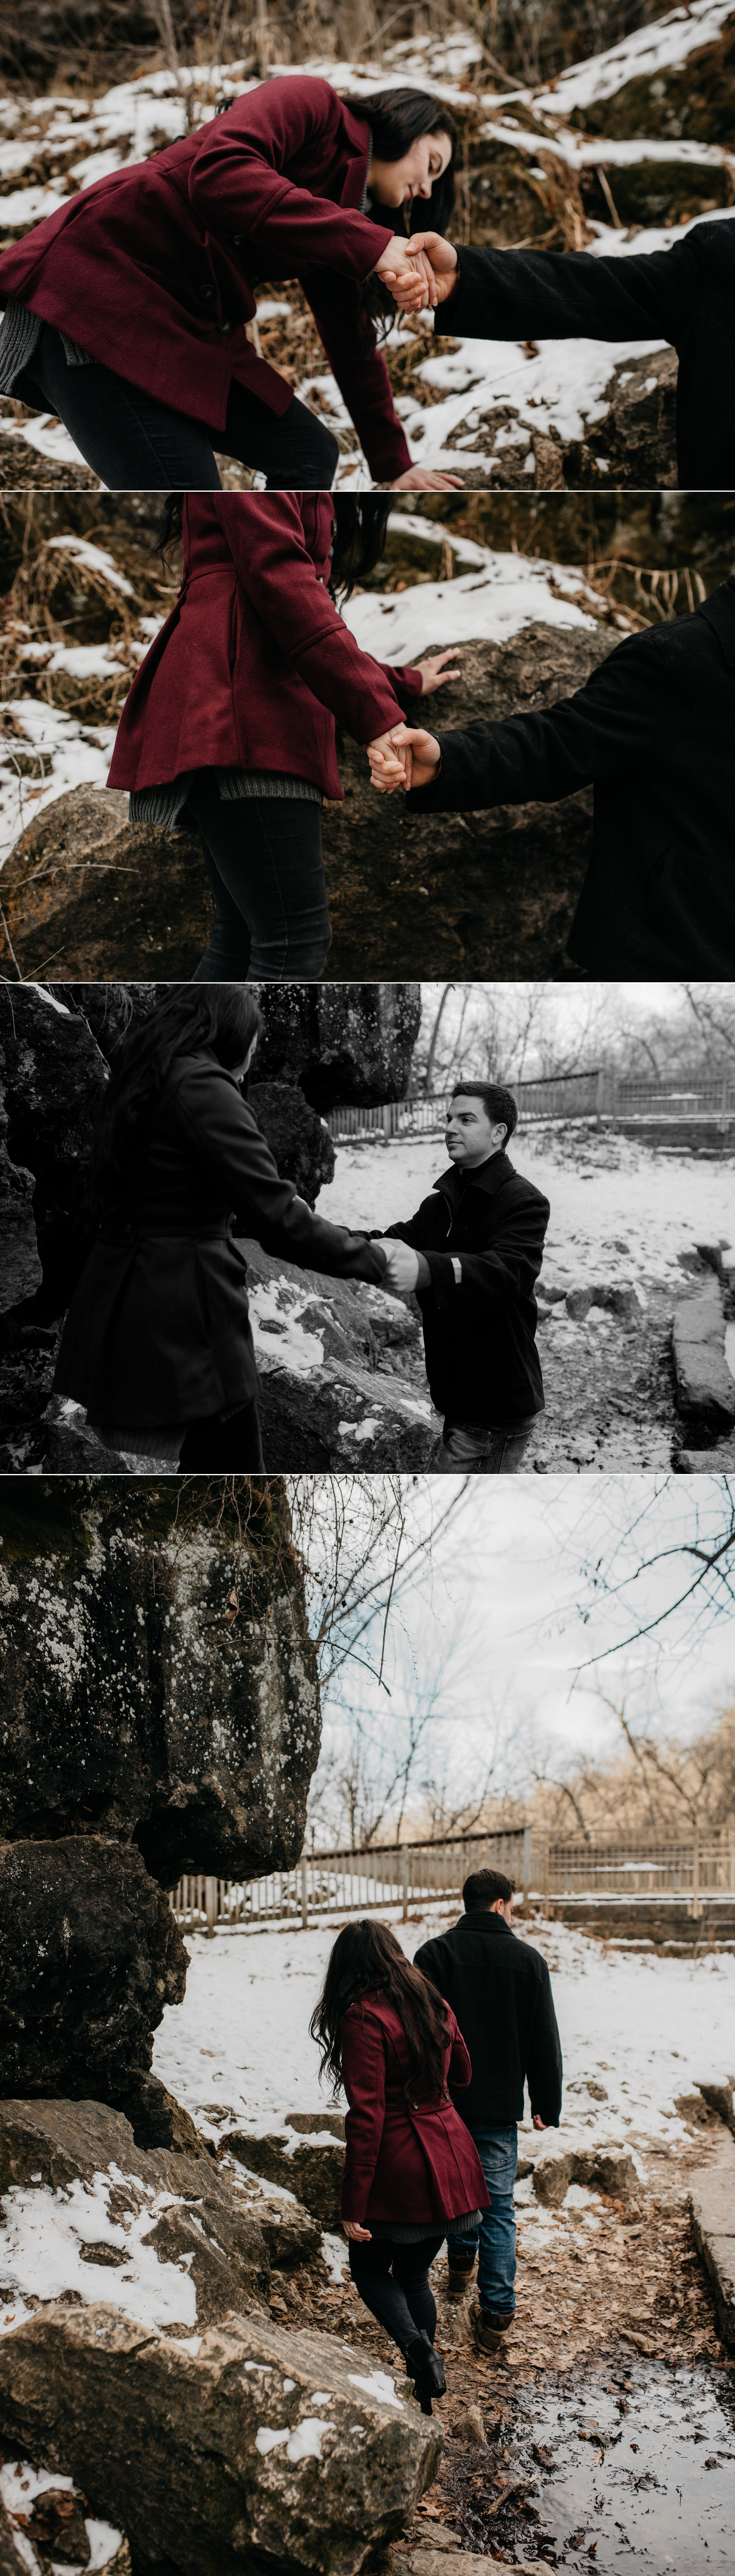 austin-minneapolis-elopement-photographer-willow-river-spain-france-costa-rica-best-family-affordable_0029.jpg